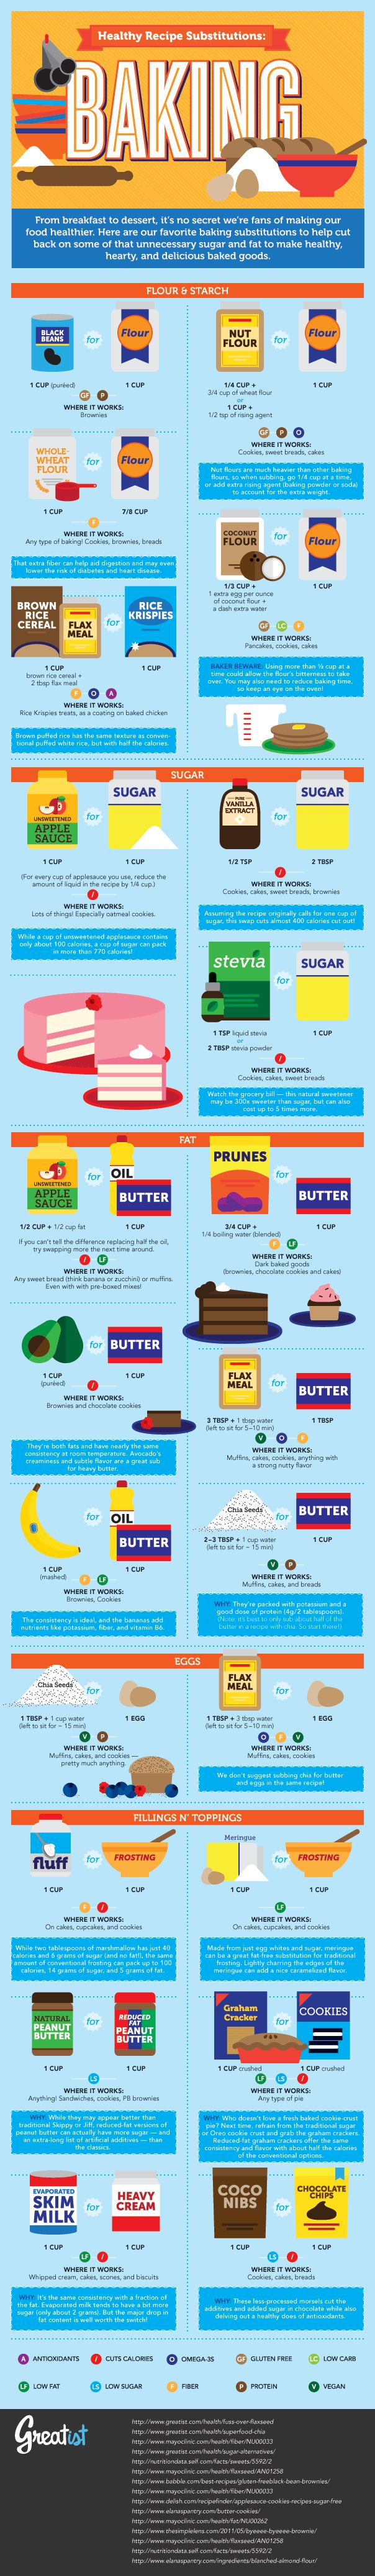 The Ultimate Guide to Healthier Baking [Infographic] | Greatist Also, Greek yogurt in place of sour cream or oil